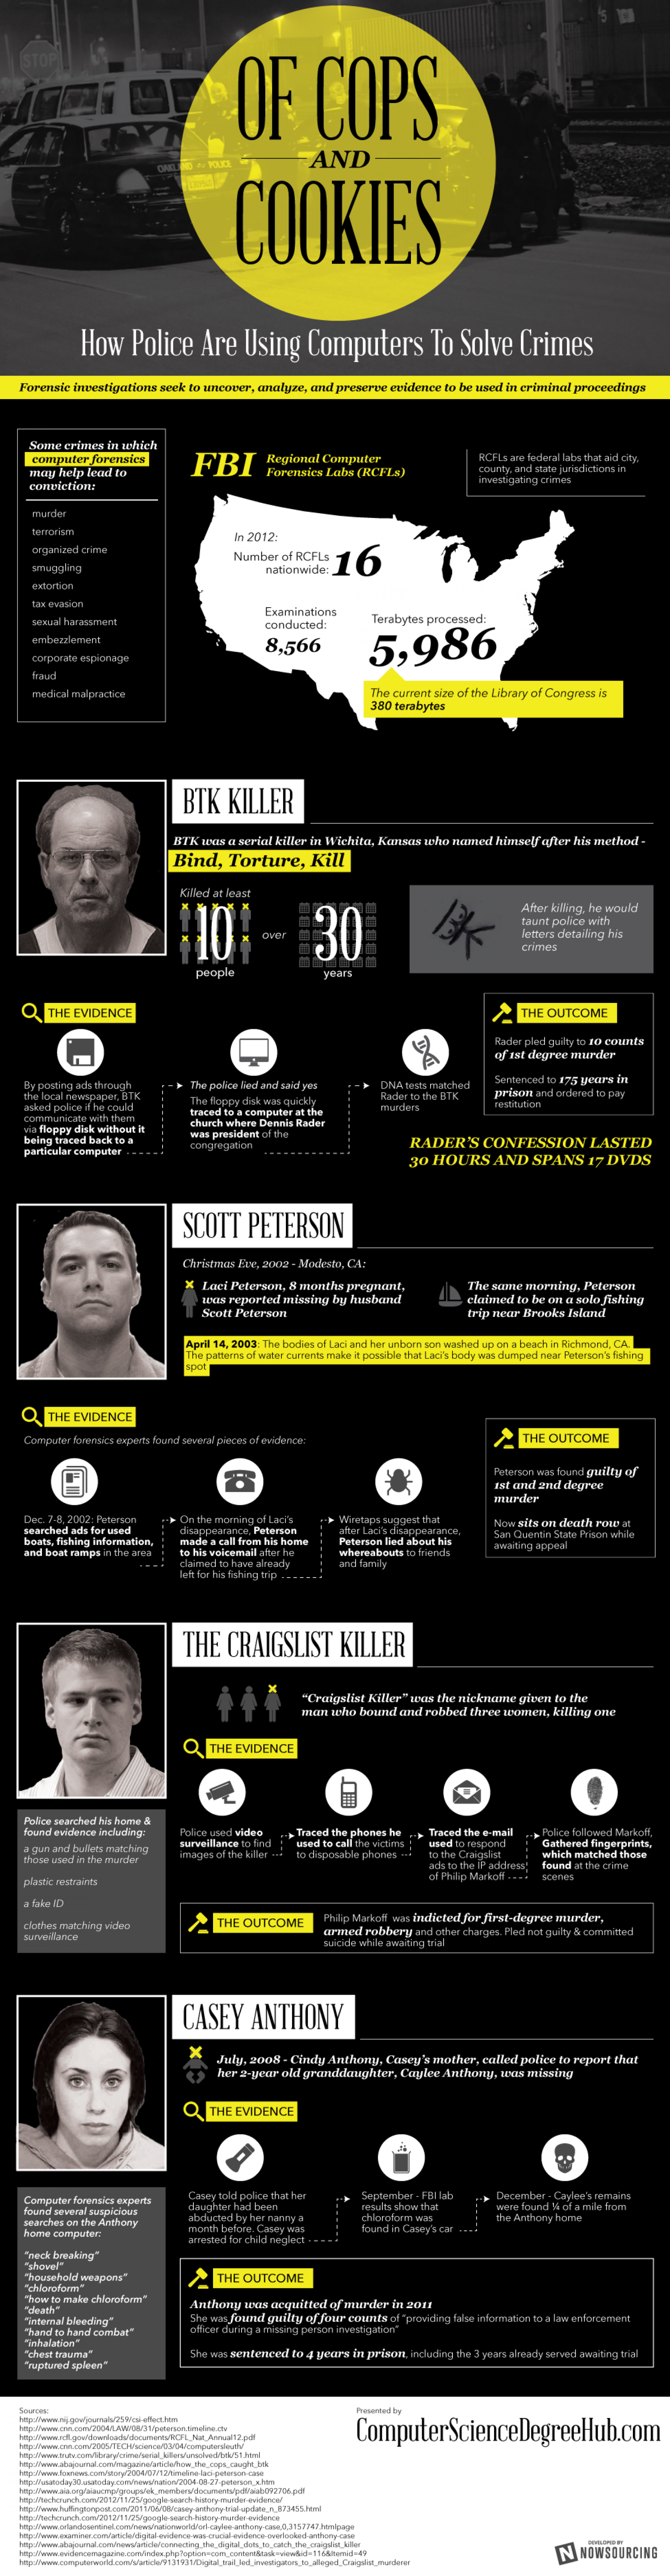 Of Cops and Cookies Infographic